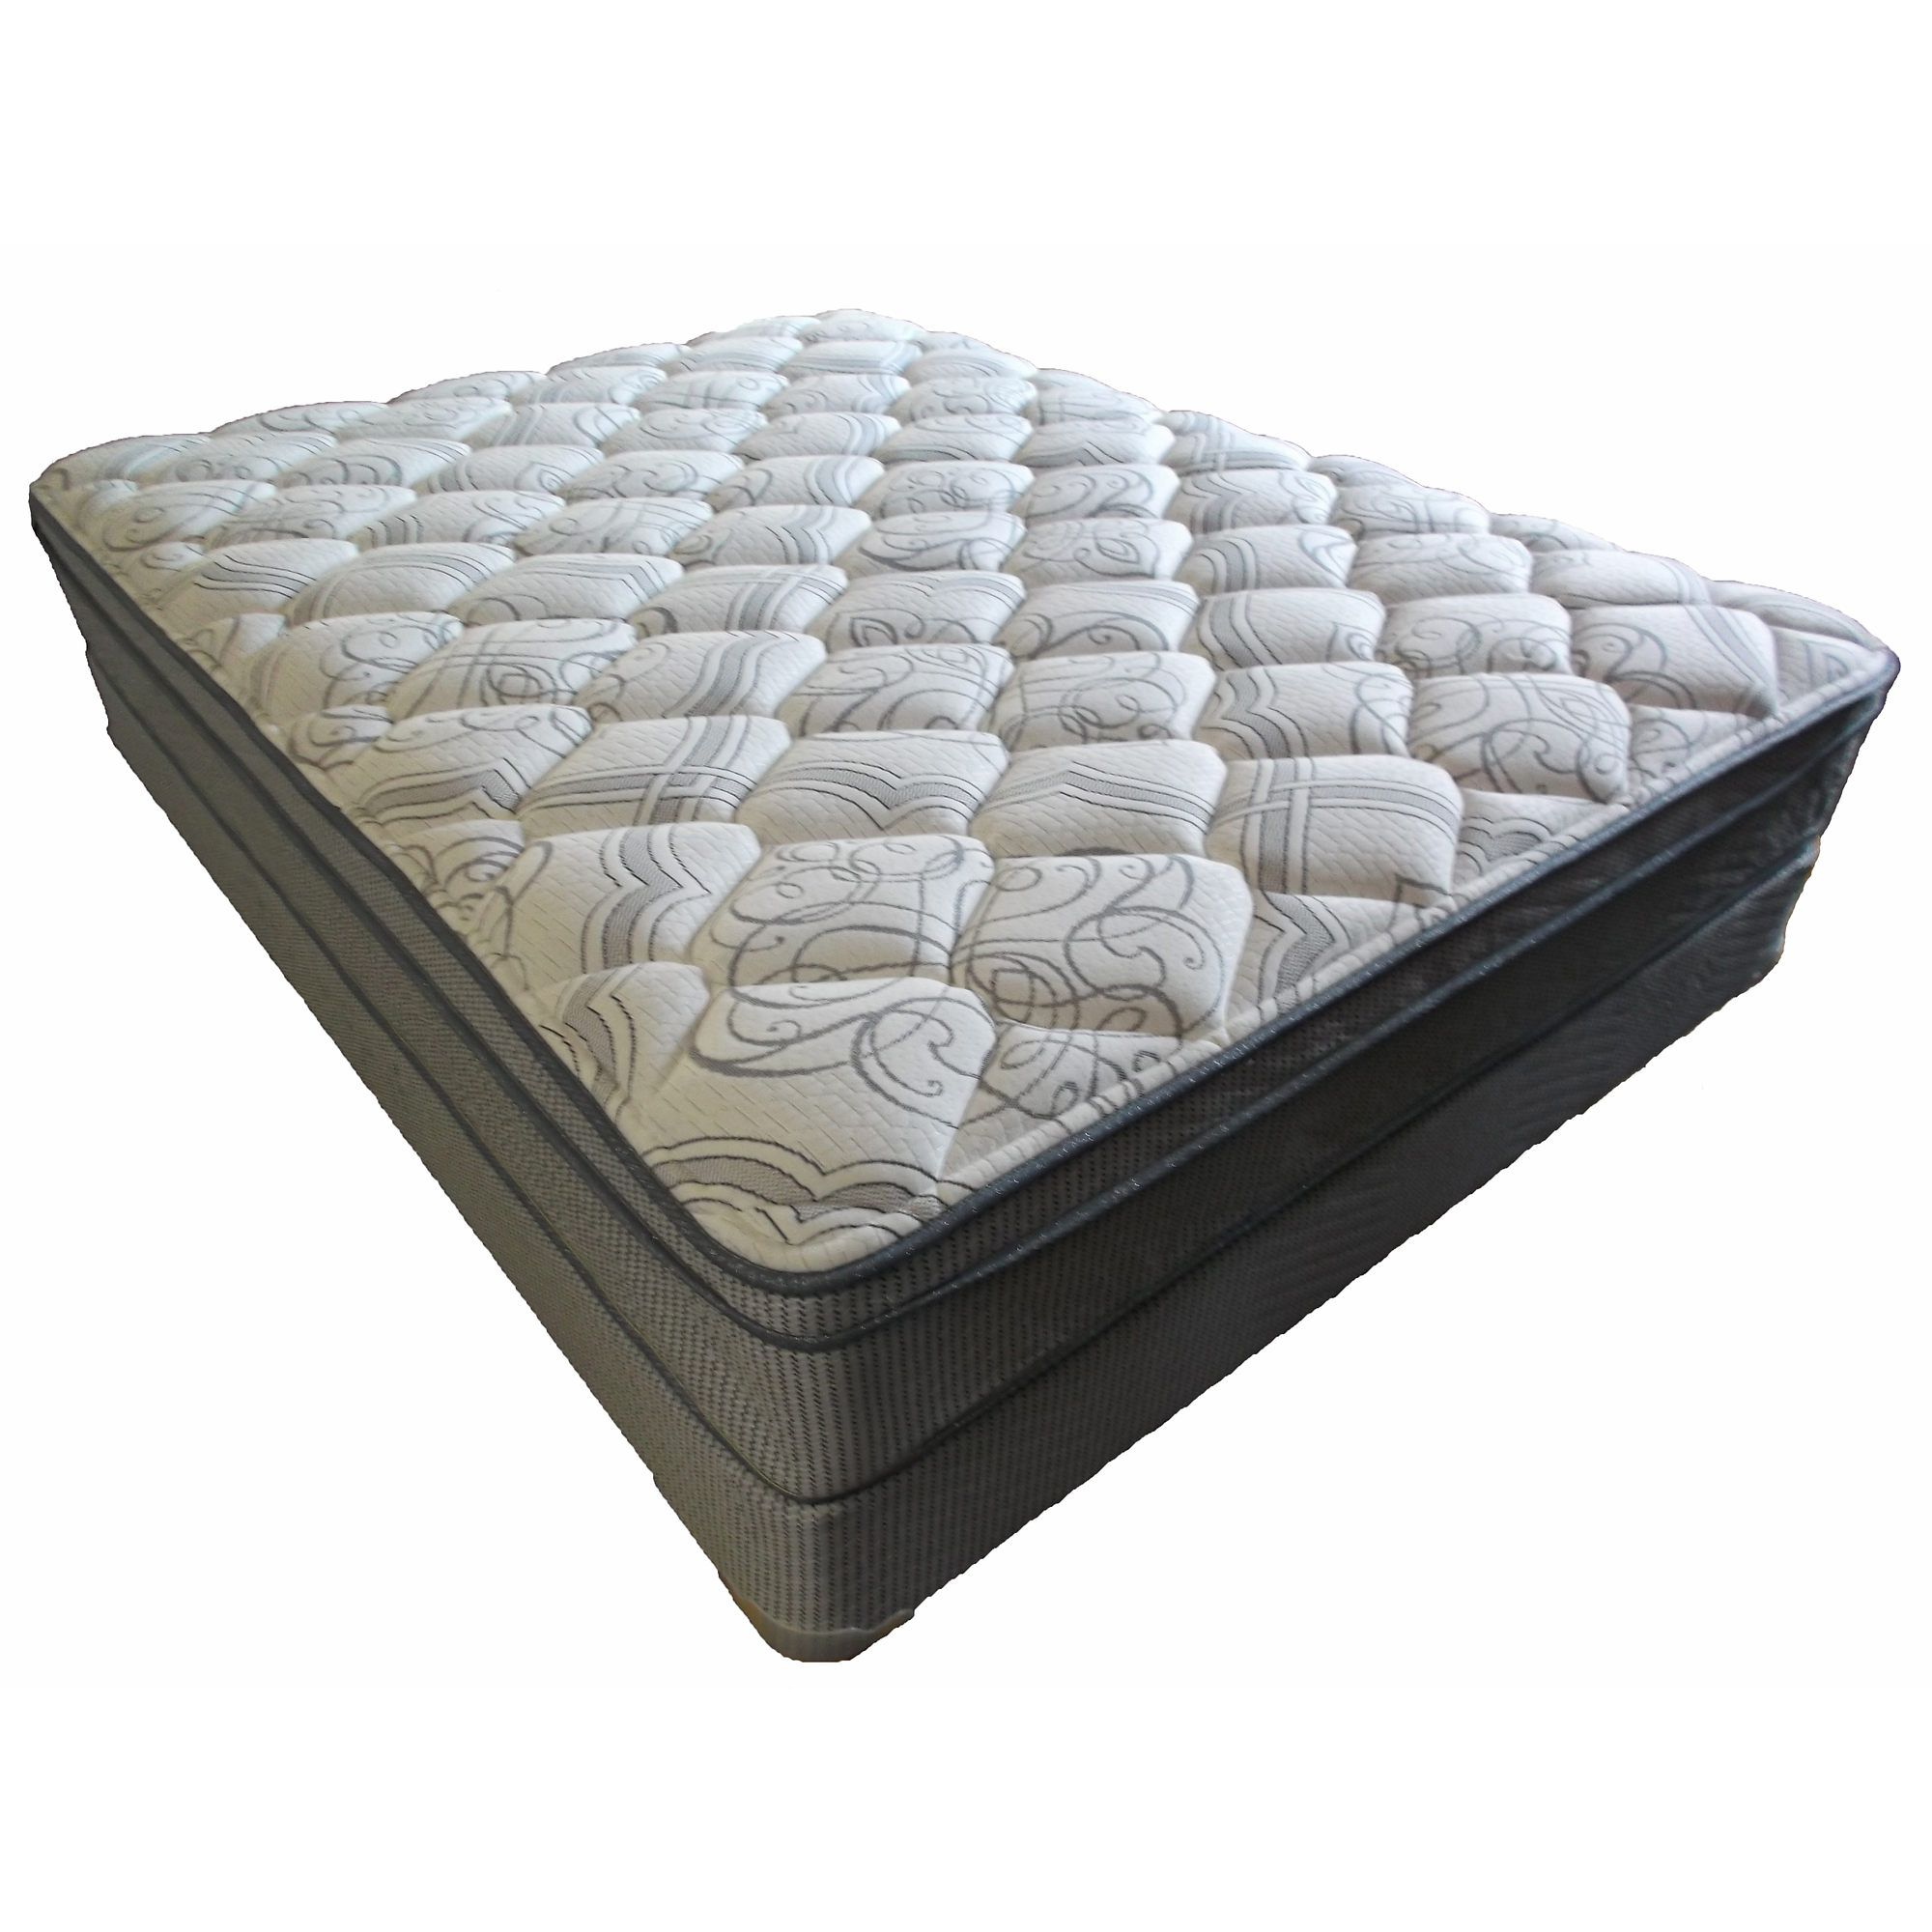 Queen Size Bed Mattress Set Queen Pillow Top Mattress Mattress King Size Pillows